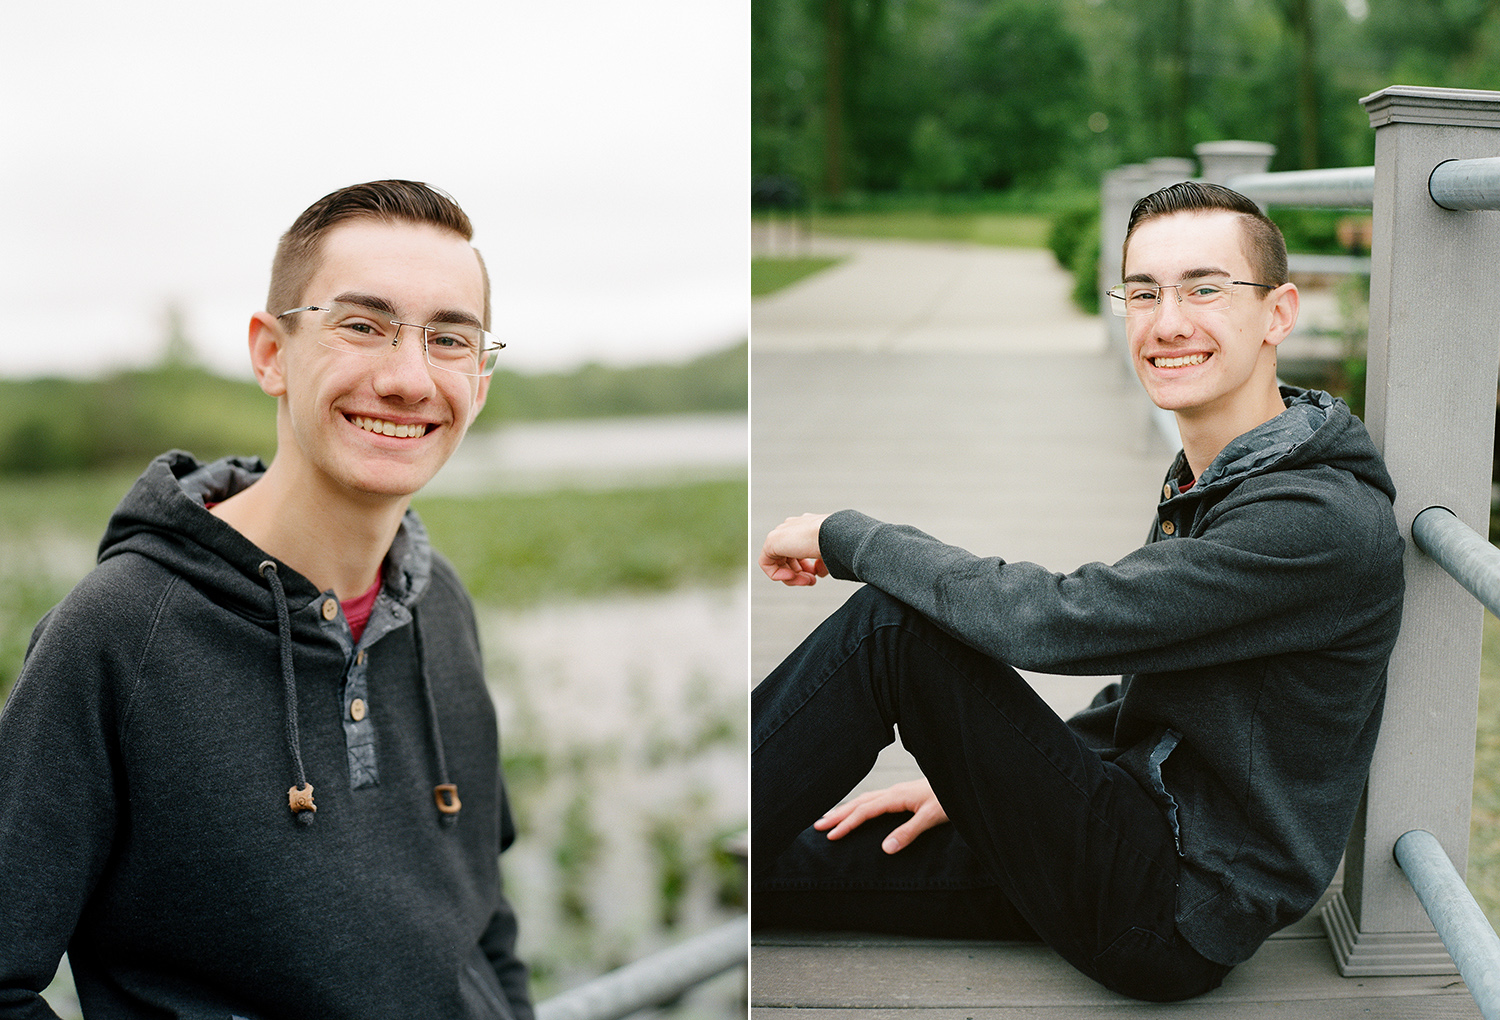 Outdoor portrait sessions for high school seniors